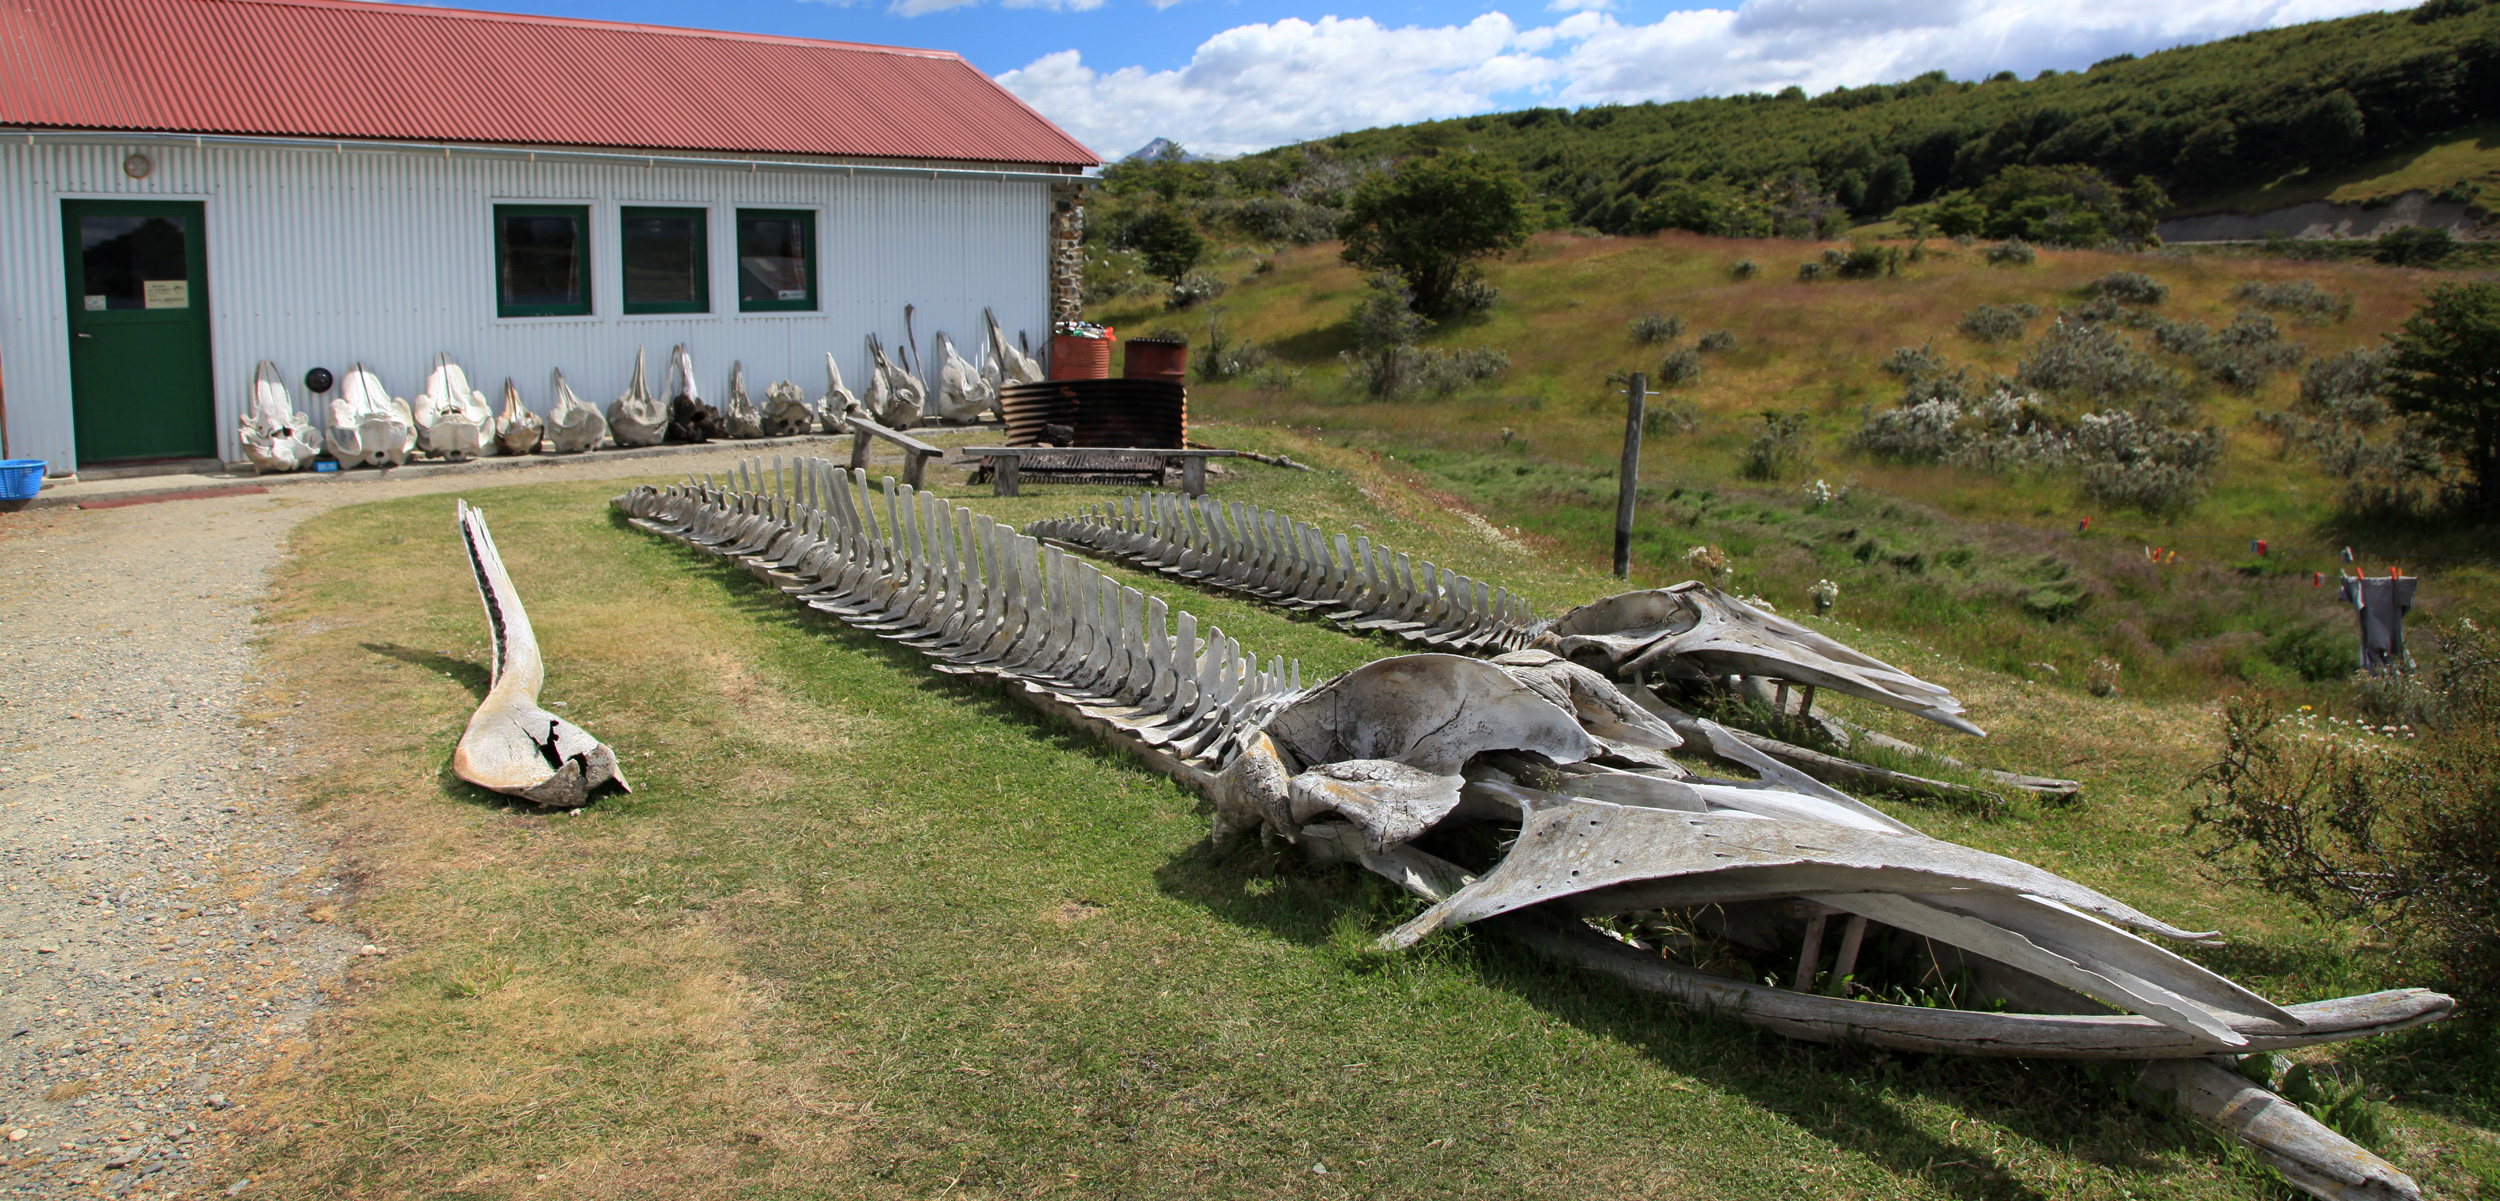 Skeletons of marine mammals fill the property at Estancia Harberton, a ranch at the tip of Tierra del Fuego, Argentina, where Natalie Goodall amassed one of the world's most significant collections of marine mammal bones. Photo by Liam Quinn